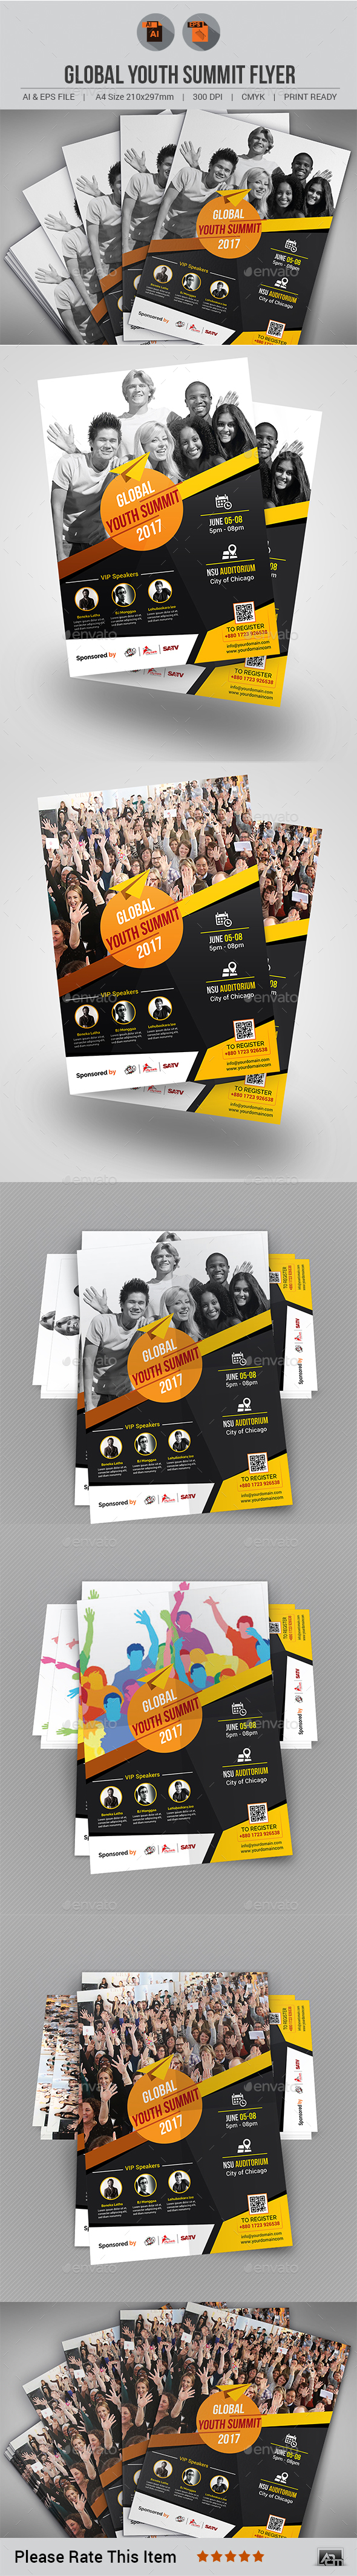 Global Youth Summit Flyer Template - Events Flyers